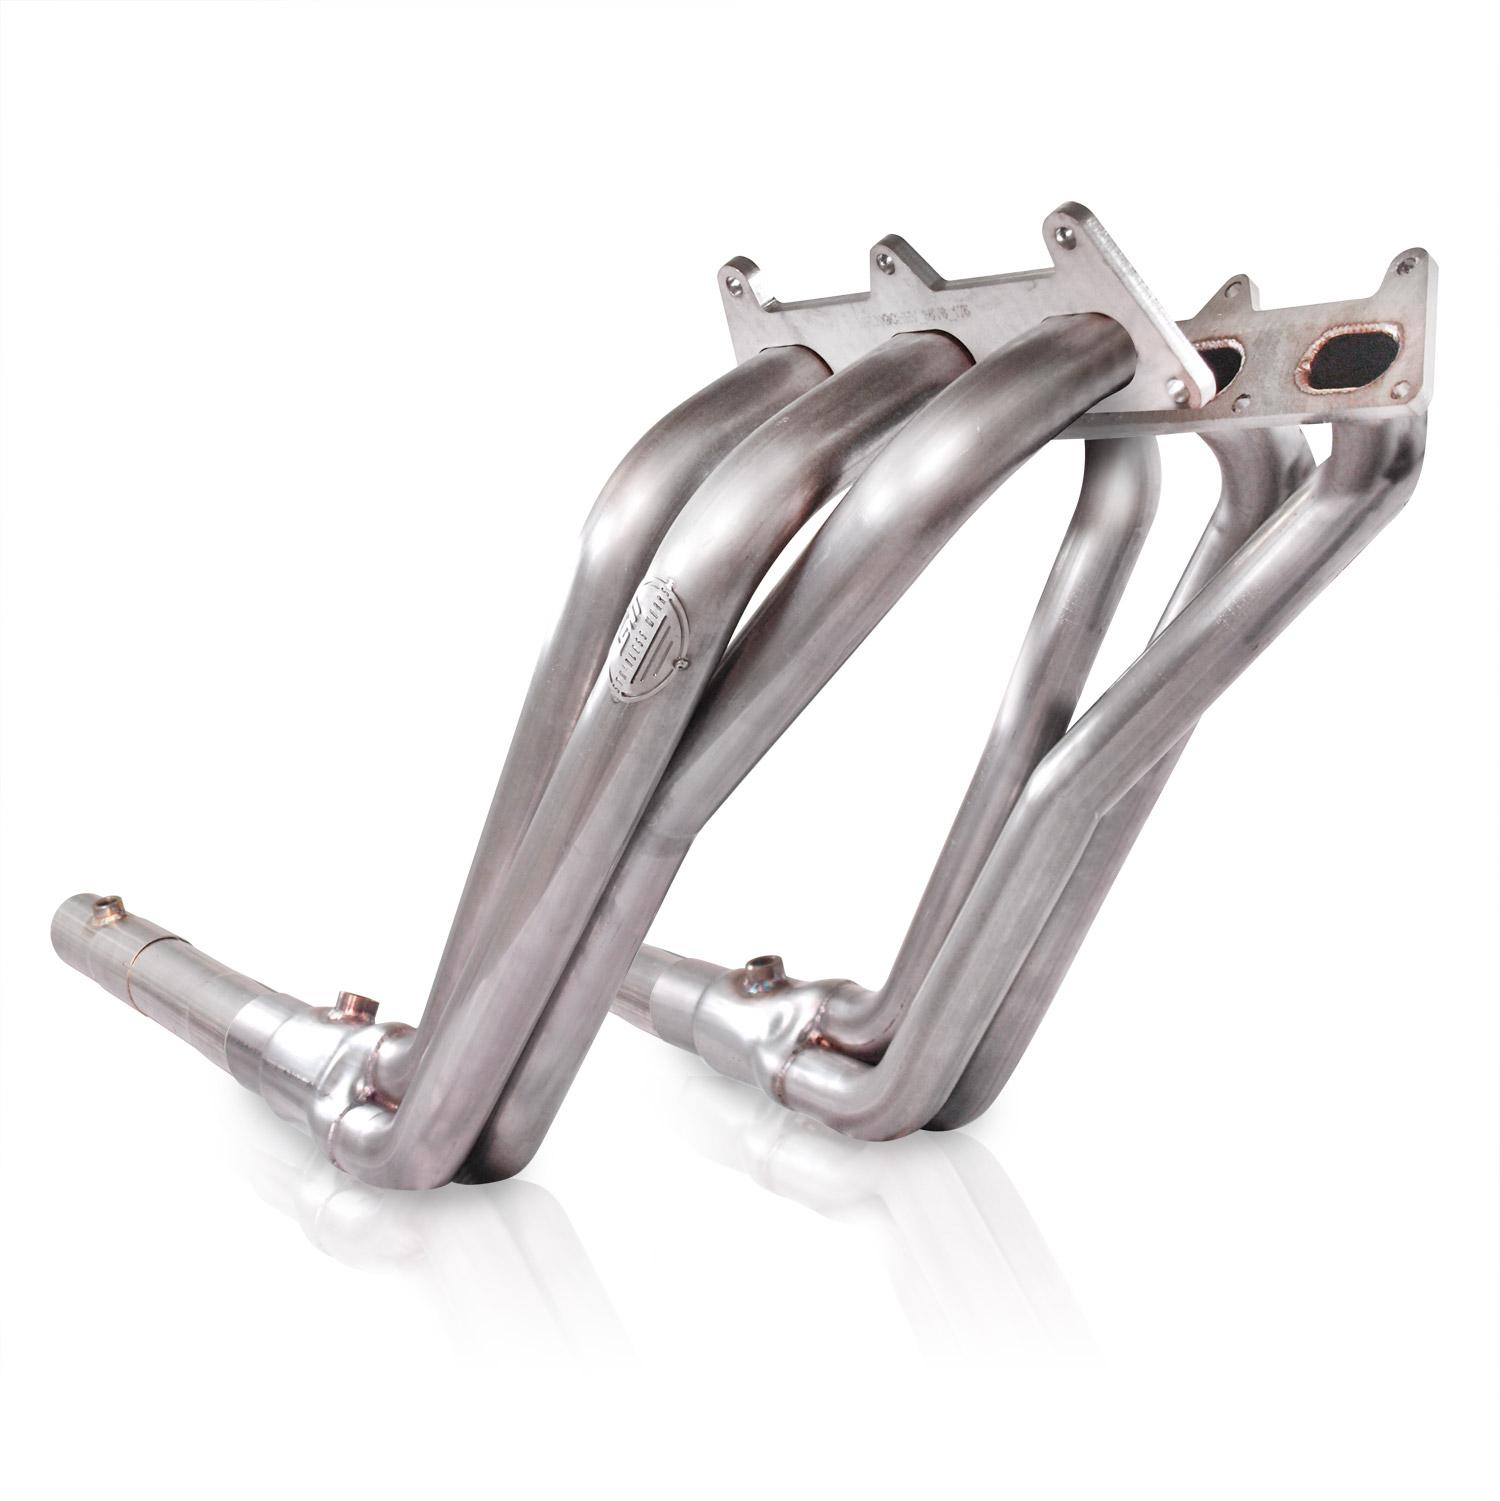 "2010+ Camaro V6 Stainless Works Long Tube 1-3/4"" Primaries w/Offroad Pipes"